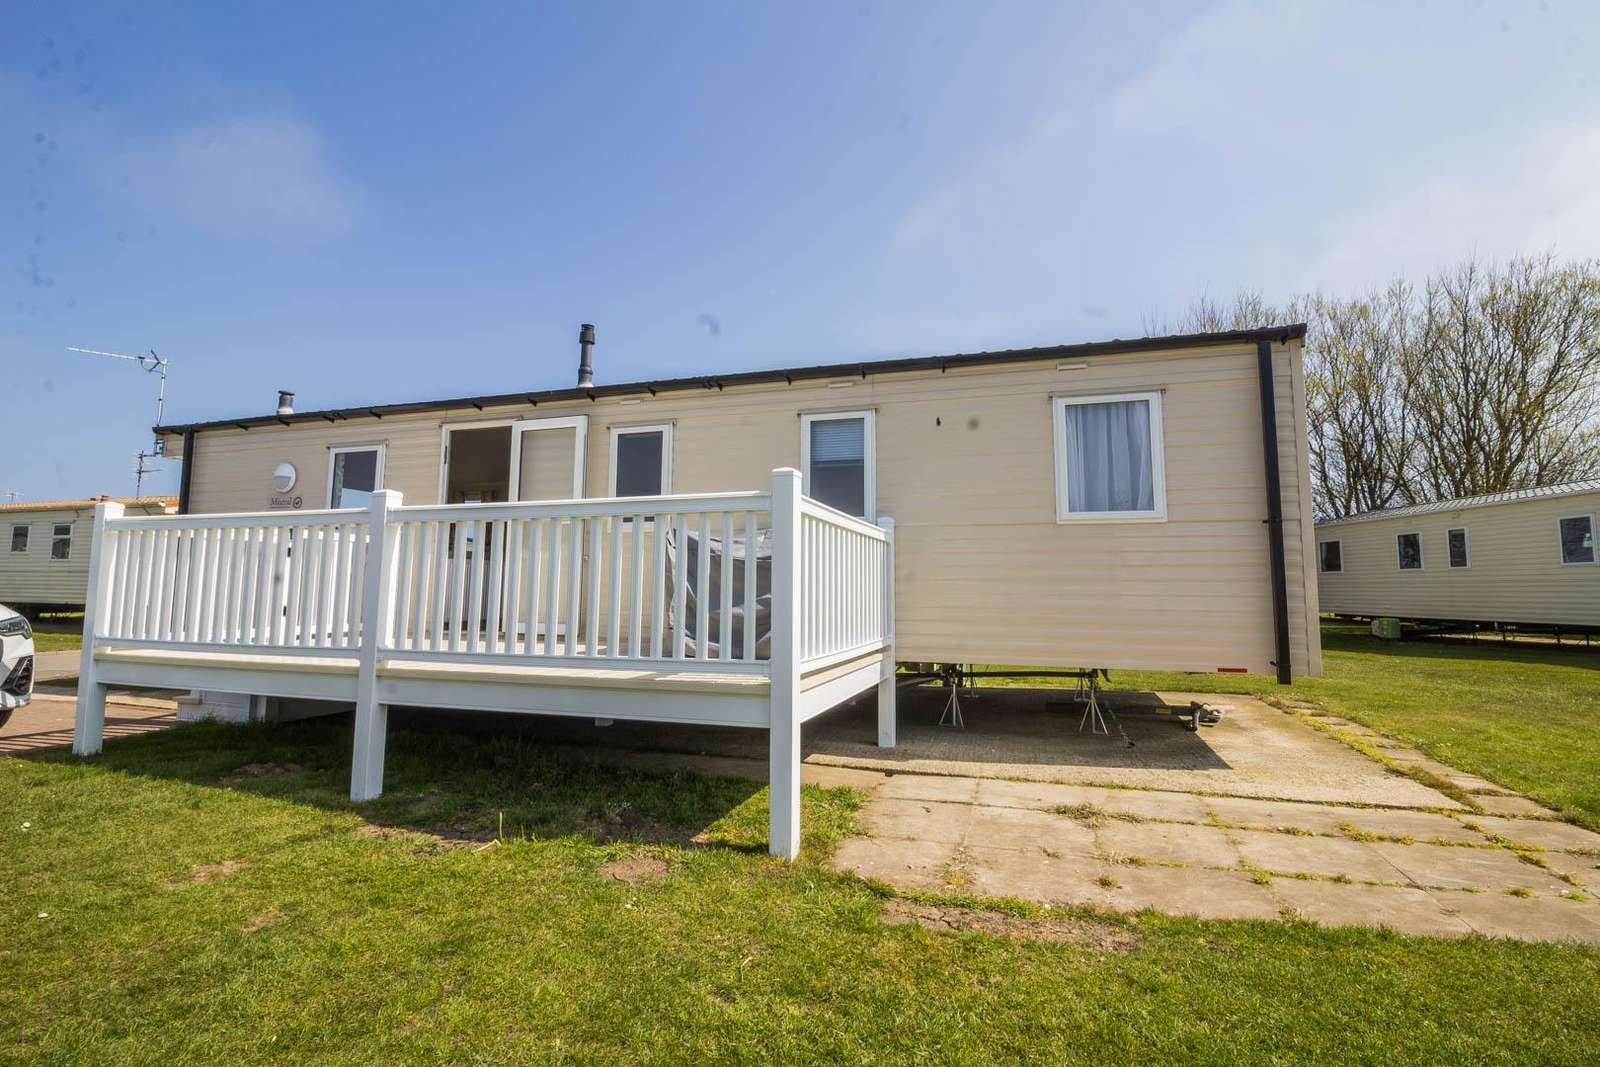 41332NF – North Field area, 3 bed, 8 berth caravan with D/G & C/H. Diamond rated. - property